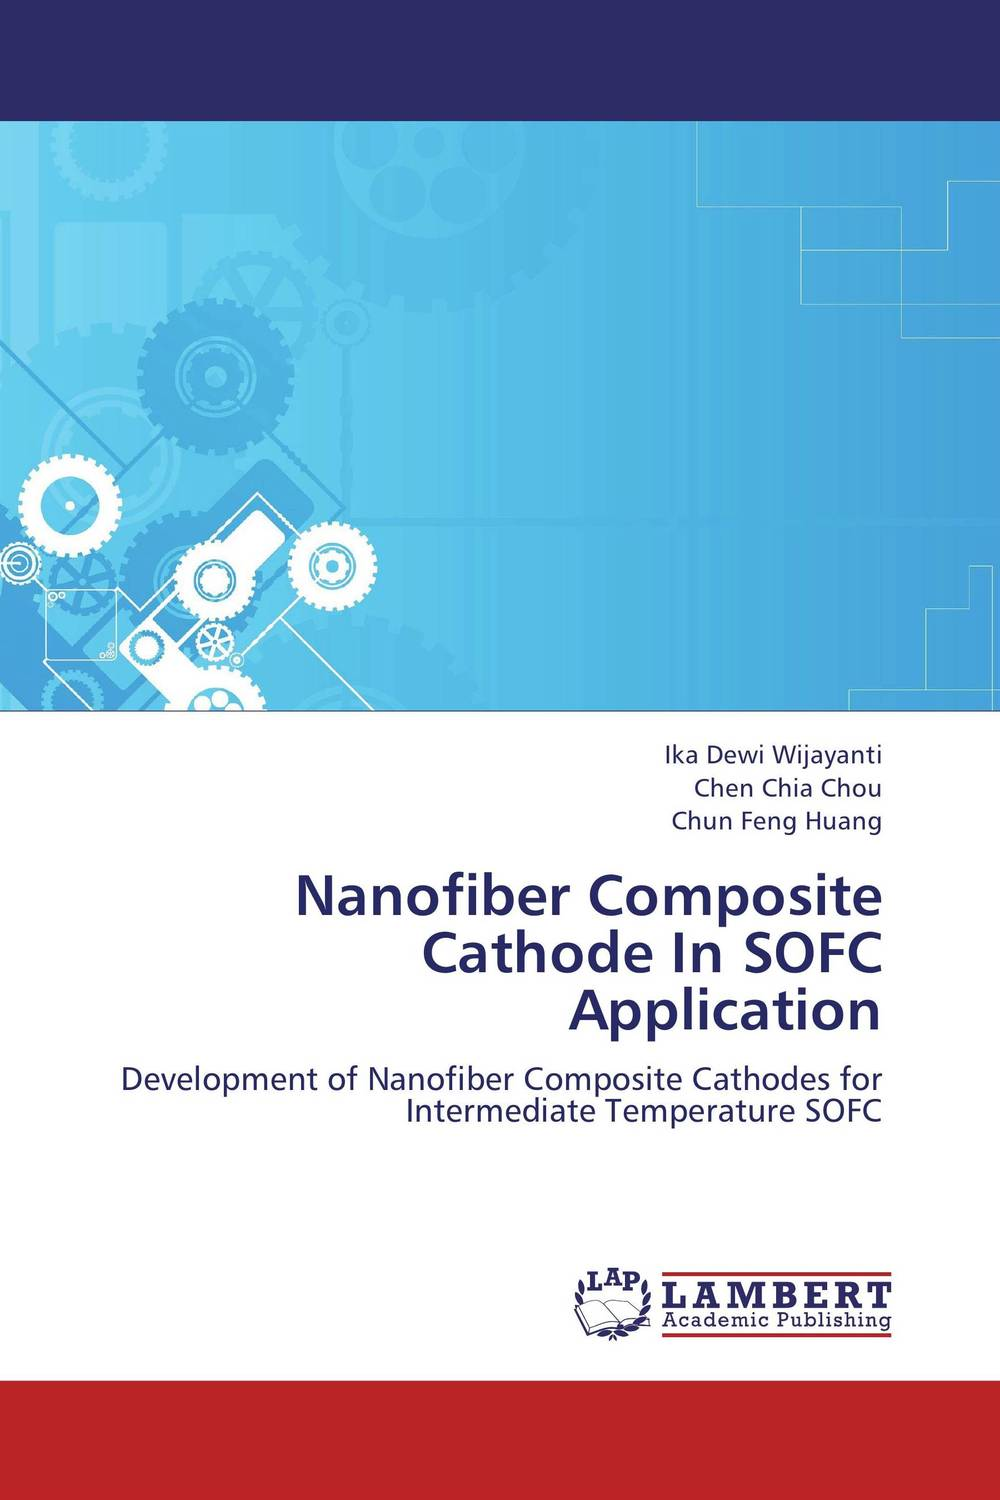 Nanofiber Composite Cathode In SOFC Application